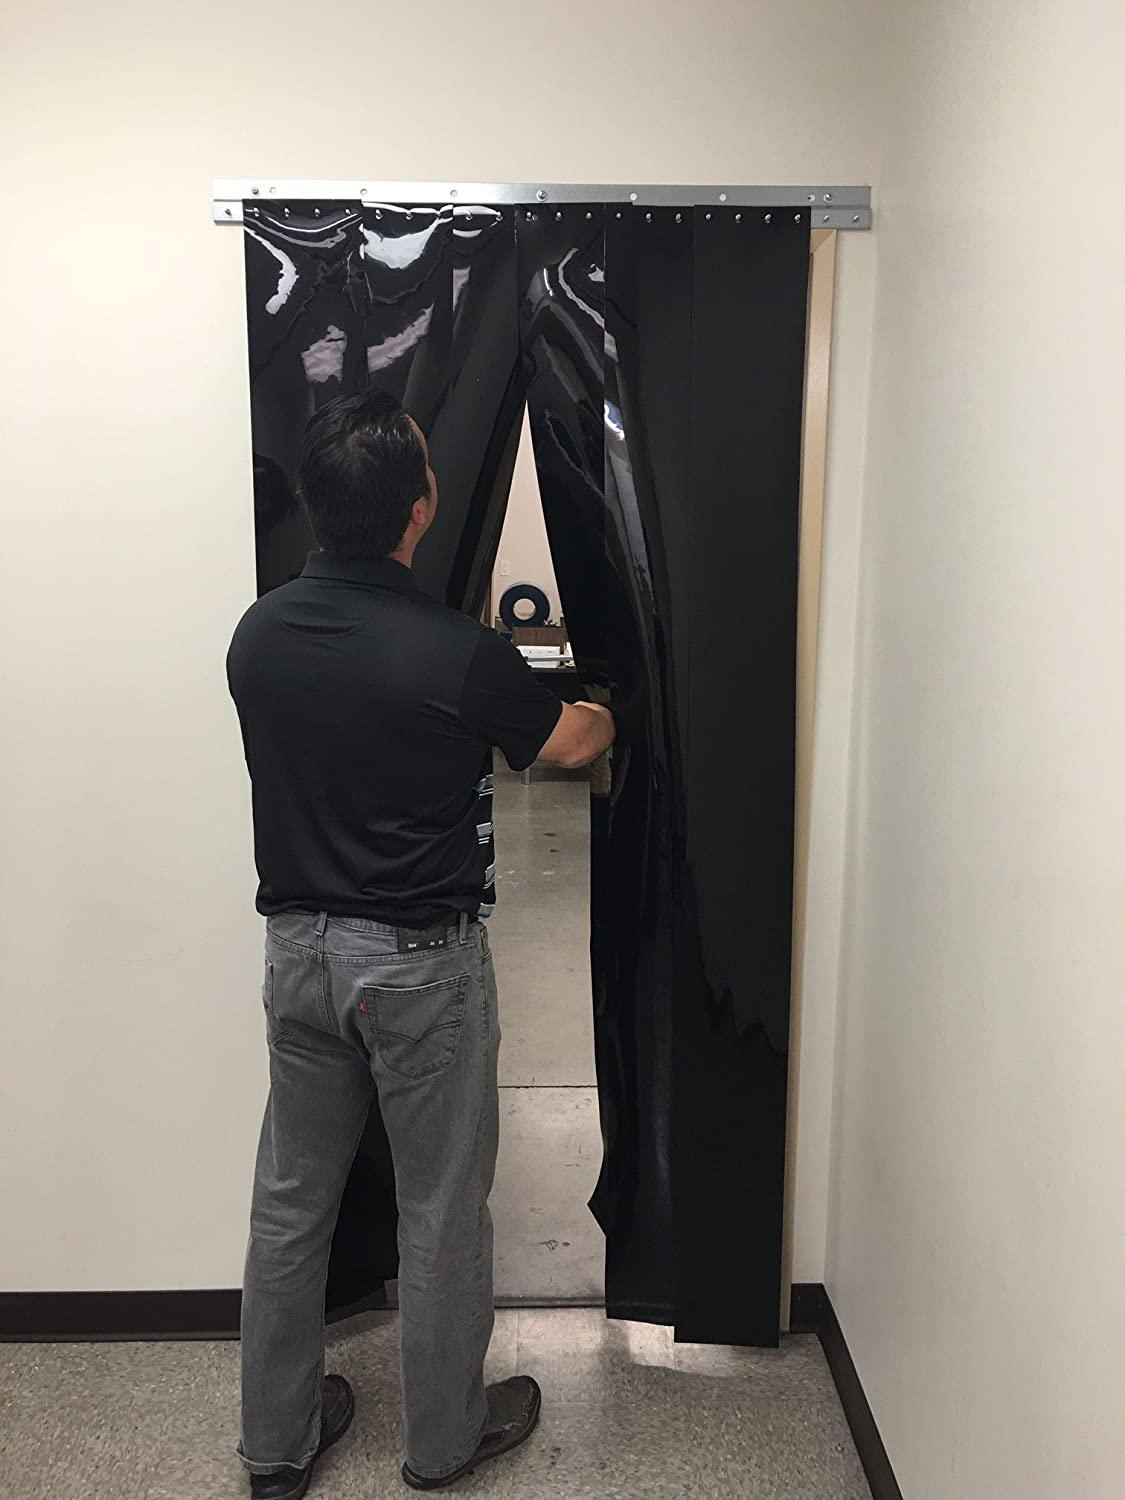 height Black Opaque smooth 8 in Hardware included width X 96 in. 108 in. 9 ft 8 ft strips with 50/% overlap common door kit Strip-Curtains.com: Strip Door Curtain